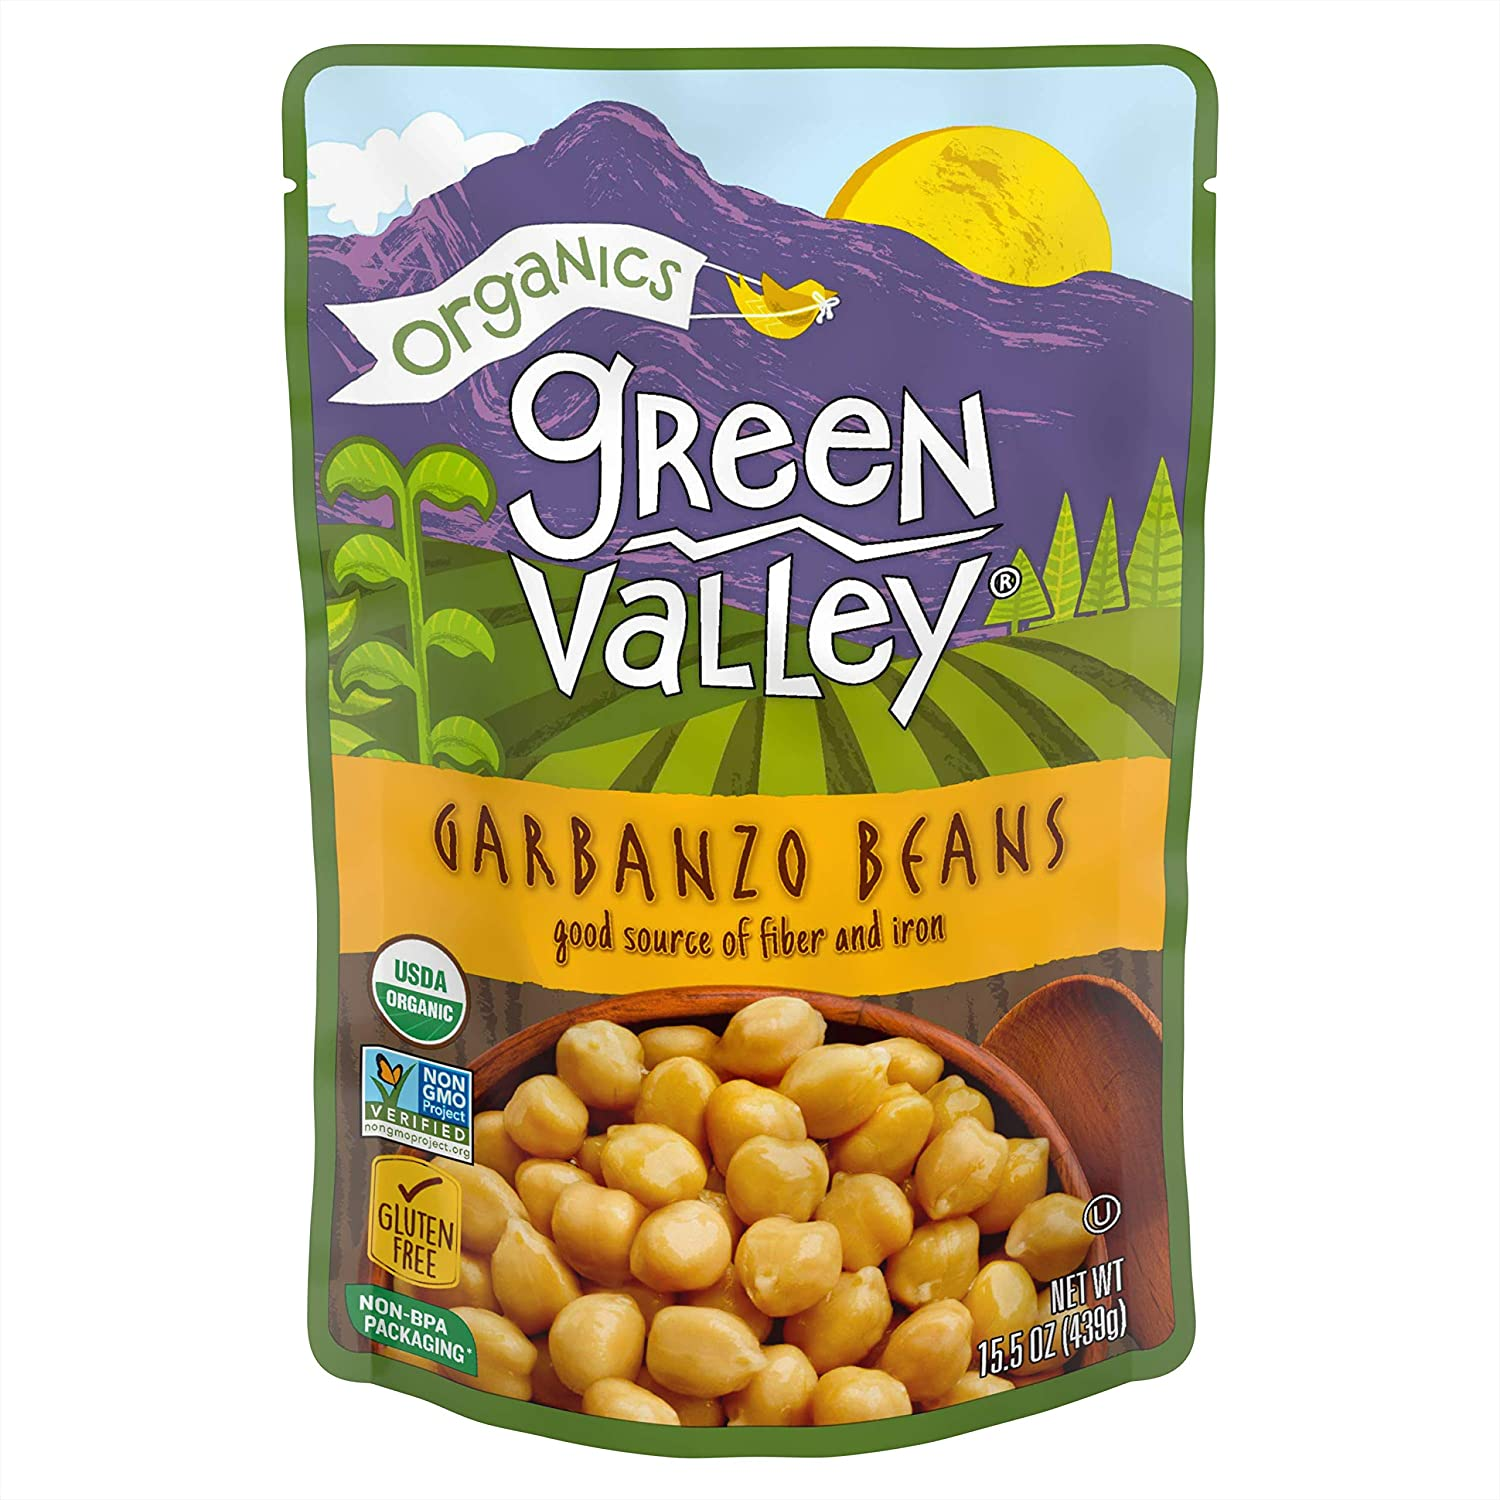 Green Valley Organics 2021 new Garbanzo Beans Ounce of 15.5 Max 70% OFF Pouch Pack